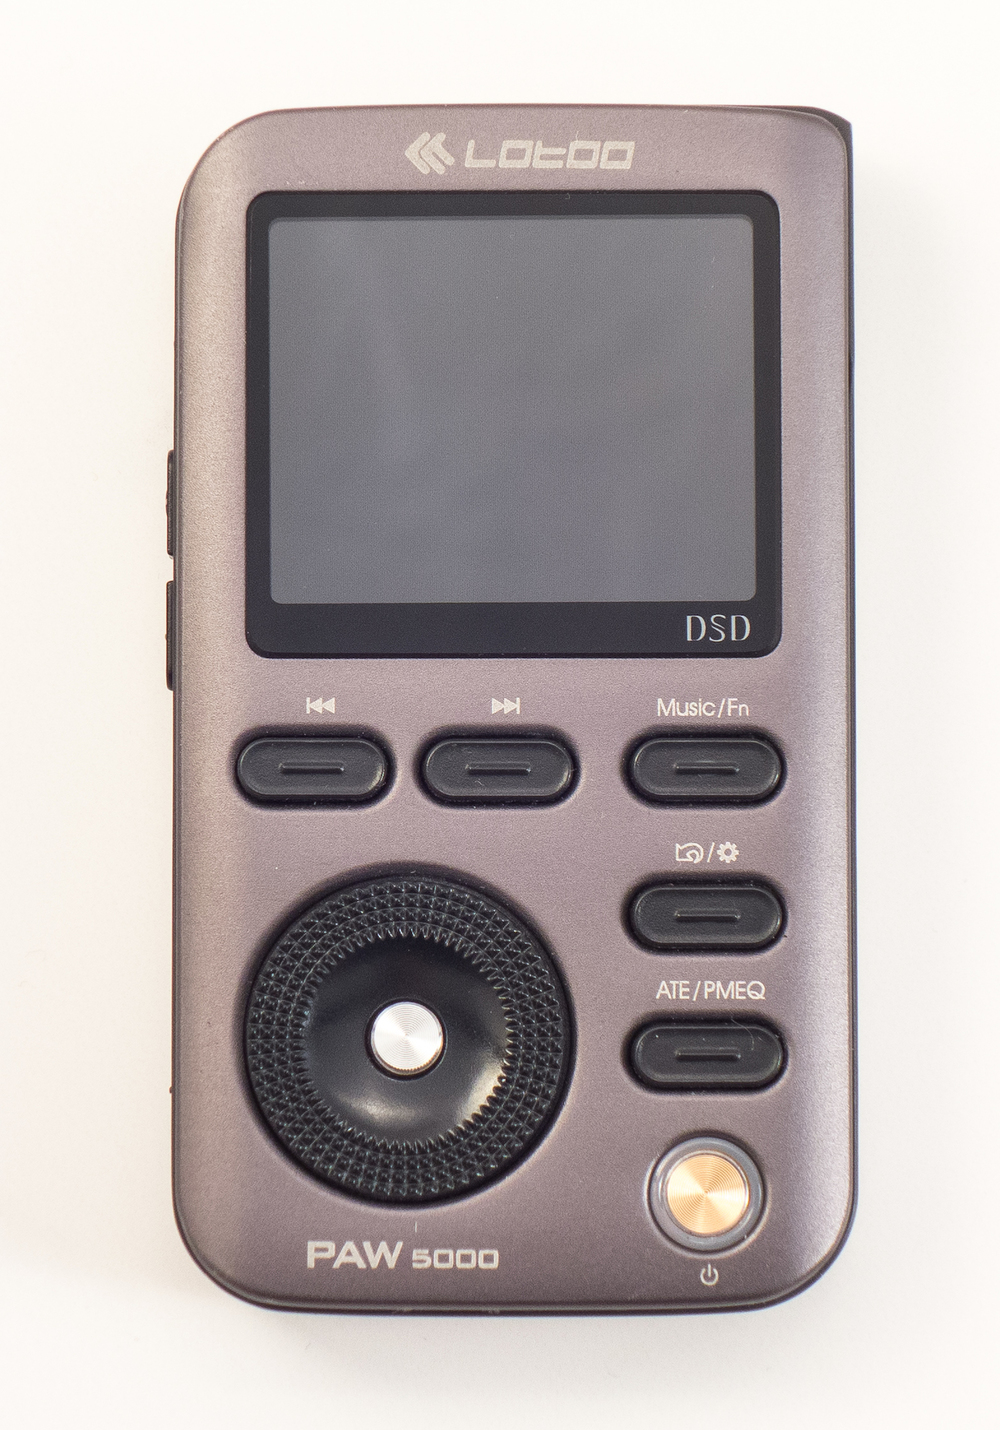 The front view of the Lotoo Paw 5000 looks somewhat dated when compared to other high resolution DAP's but there is a lot of control options for listening to your music.